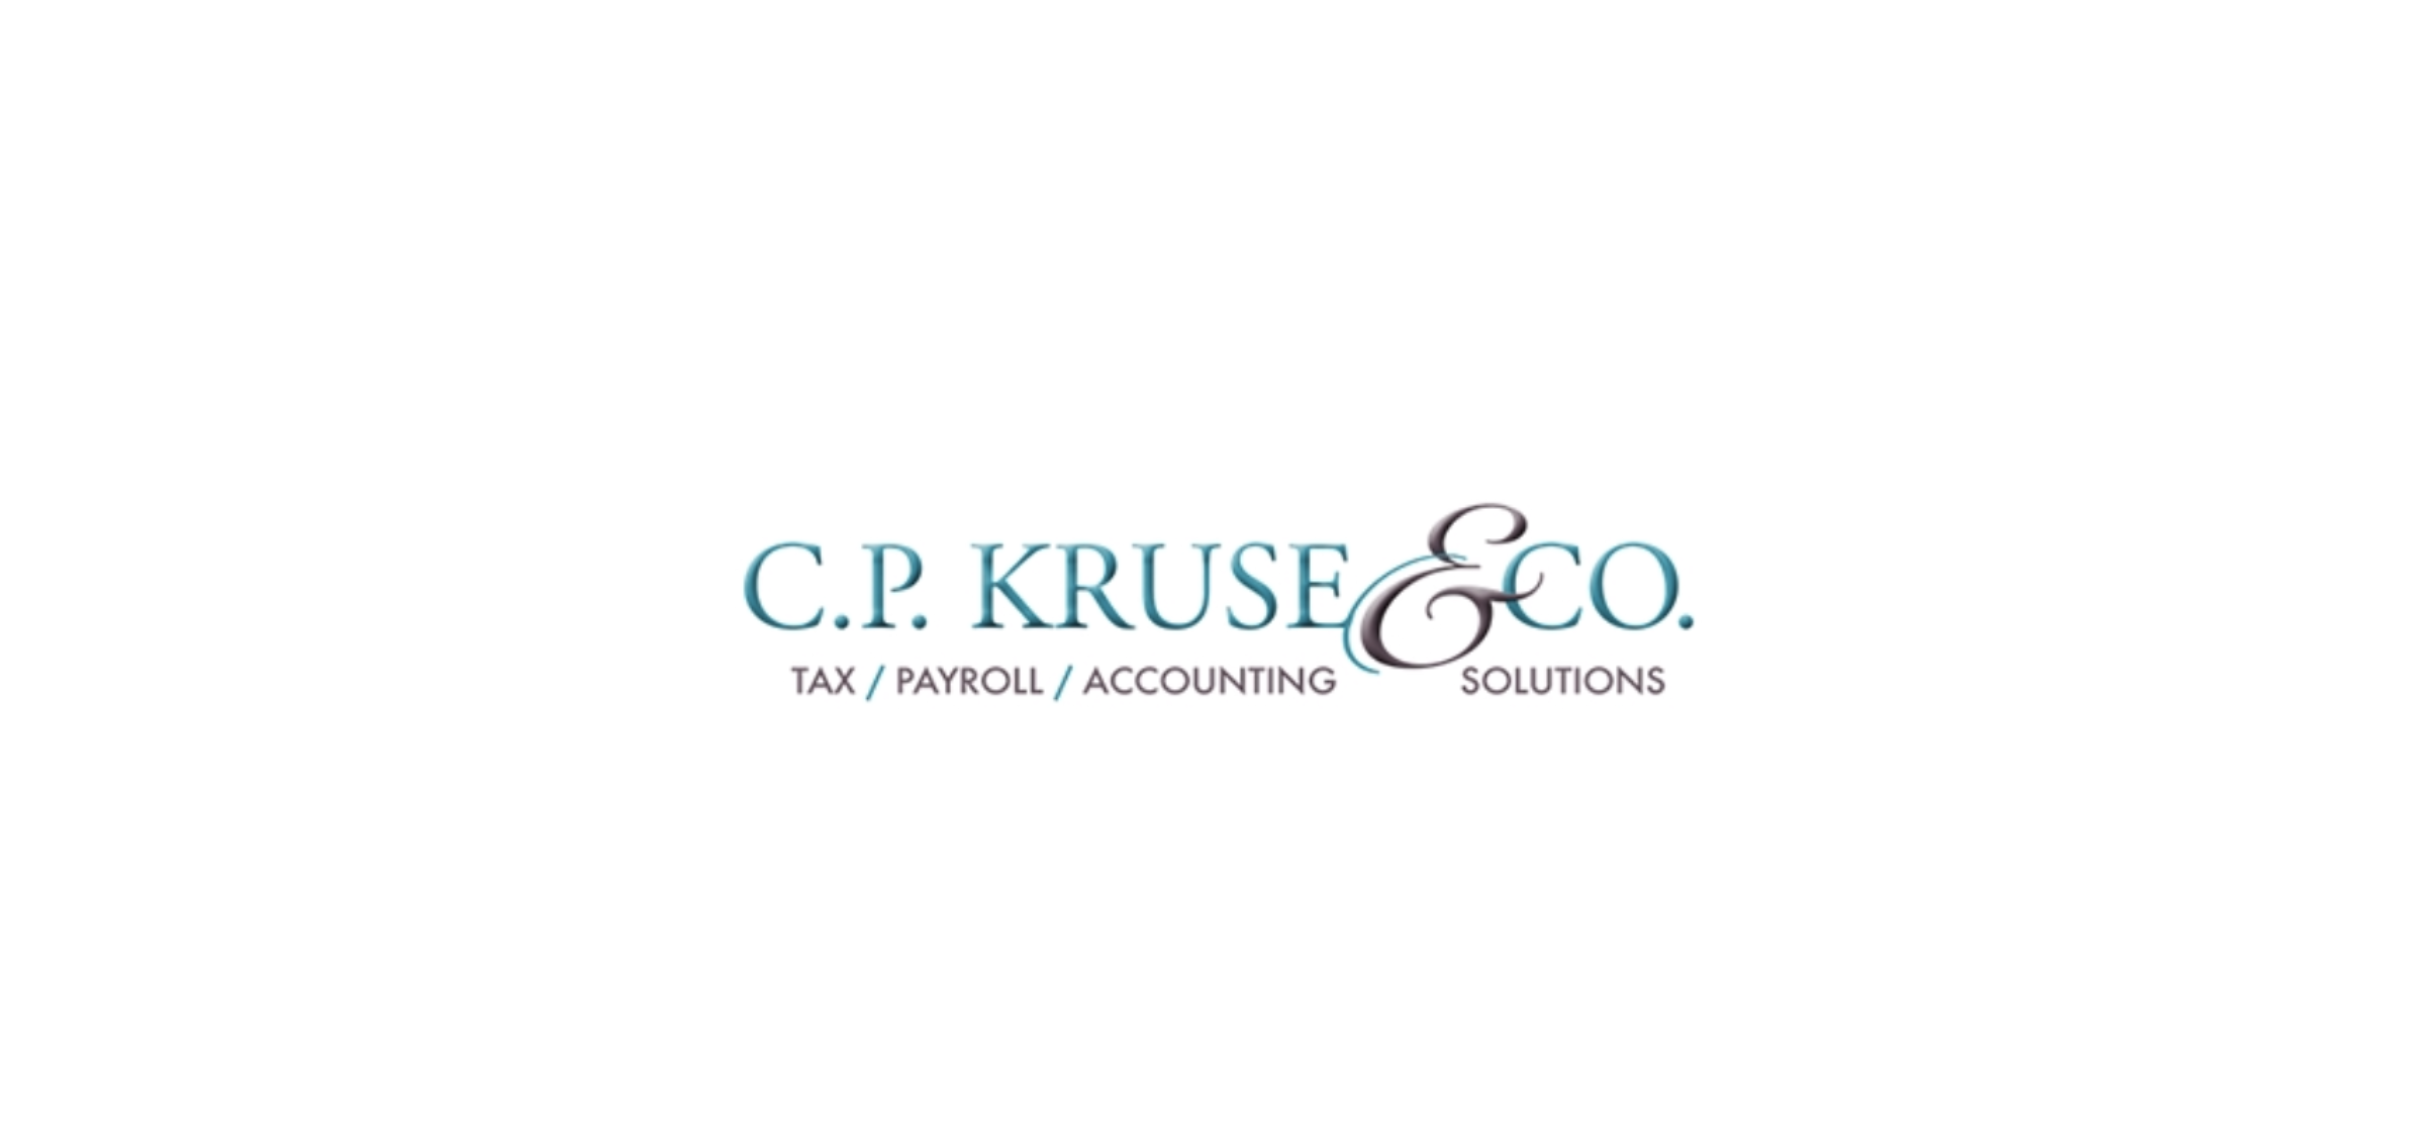 With tax season around the corner, set your appointment up with C.P. Kruse.  The local trusted professional!  (828)684-7374 or visit their website  Kruseaccounting.com